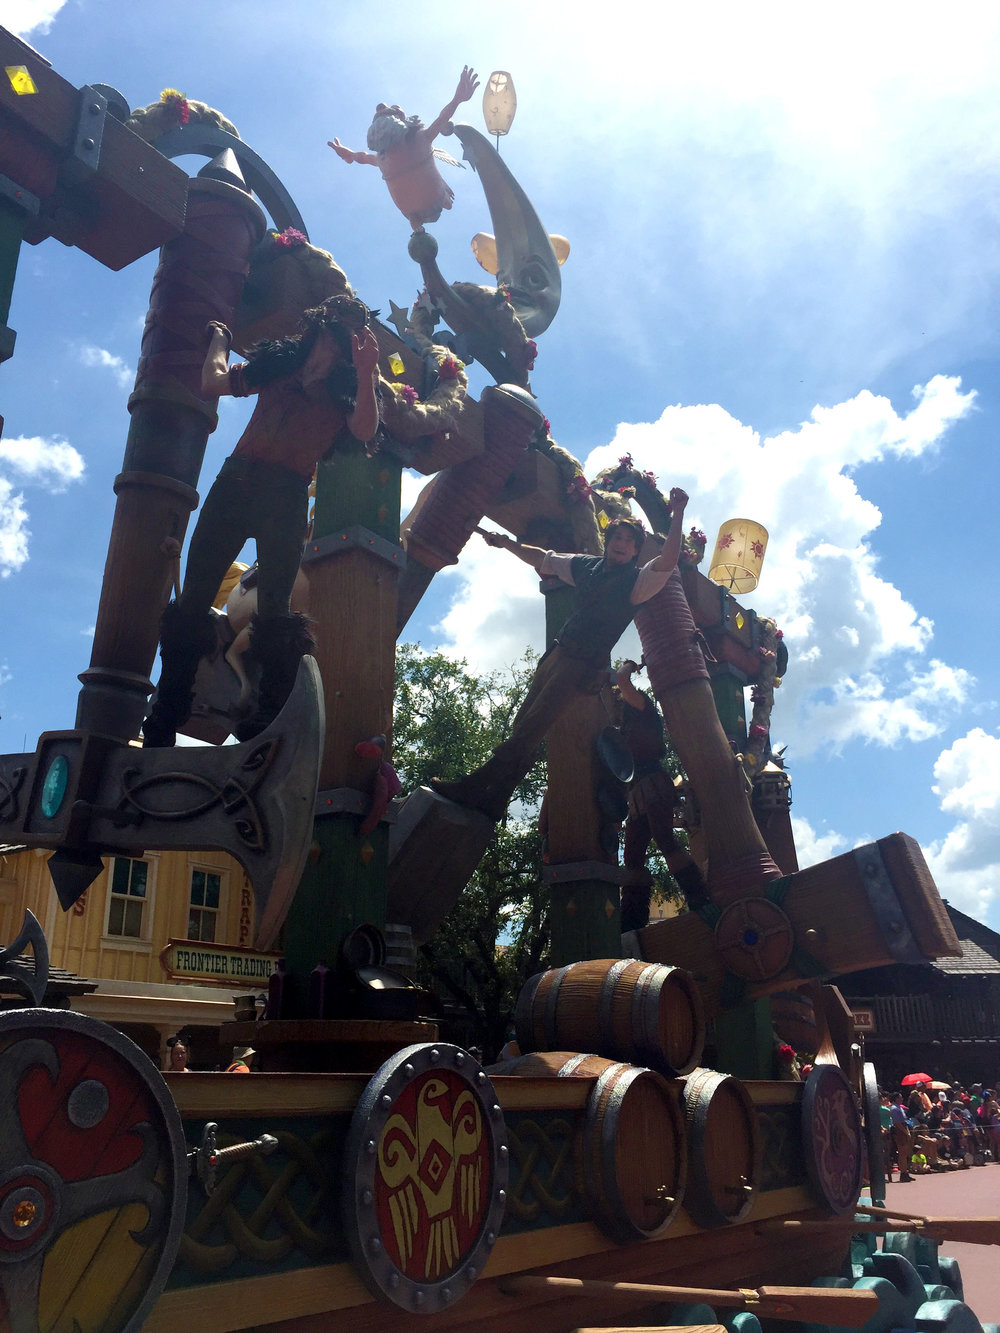 Flynn Rider and the thugs swing on giant hammers and axes. Doesn't Flynn look like he's having a blast?